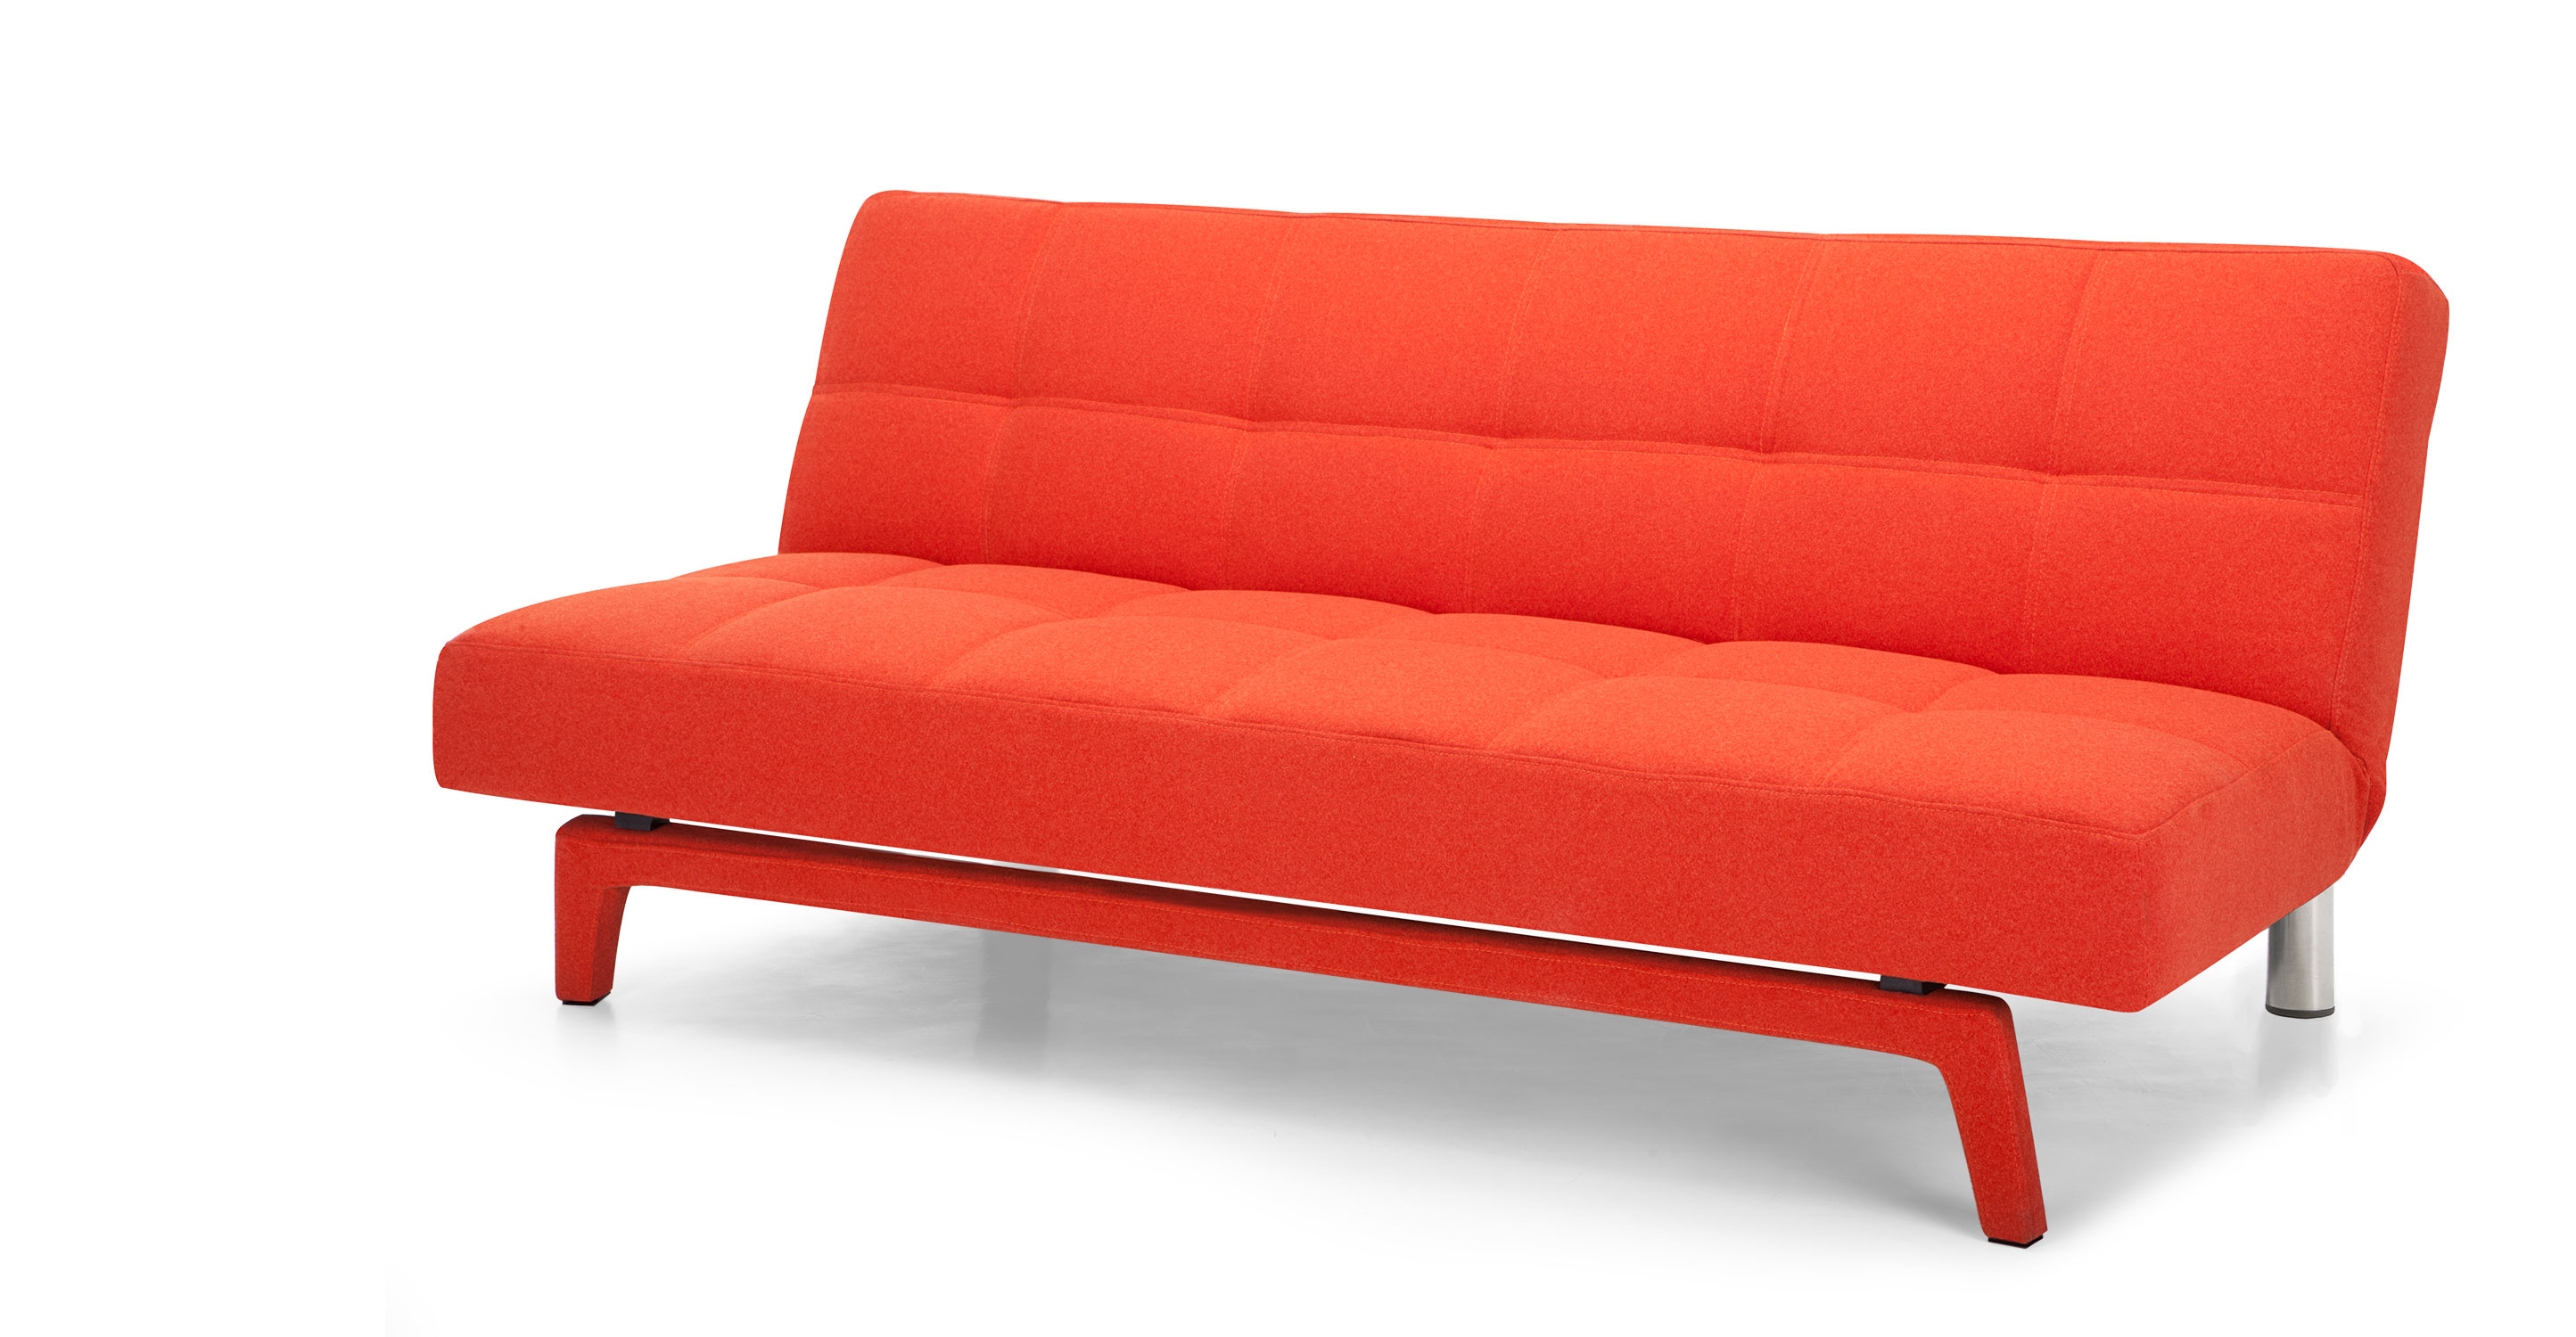 Yoko sofa bed in saffron orange Loveseat sofa bed